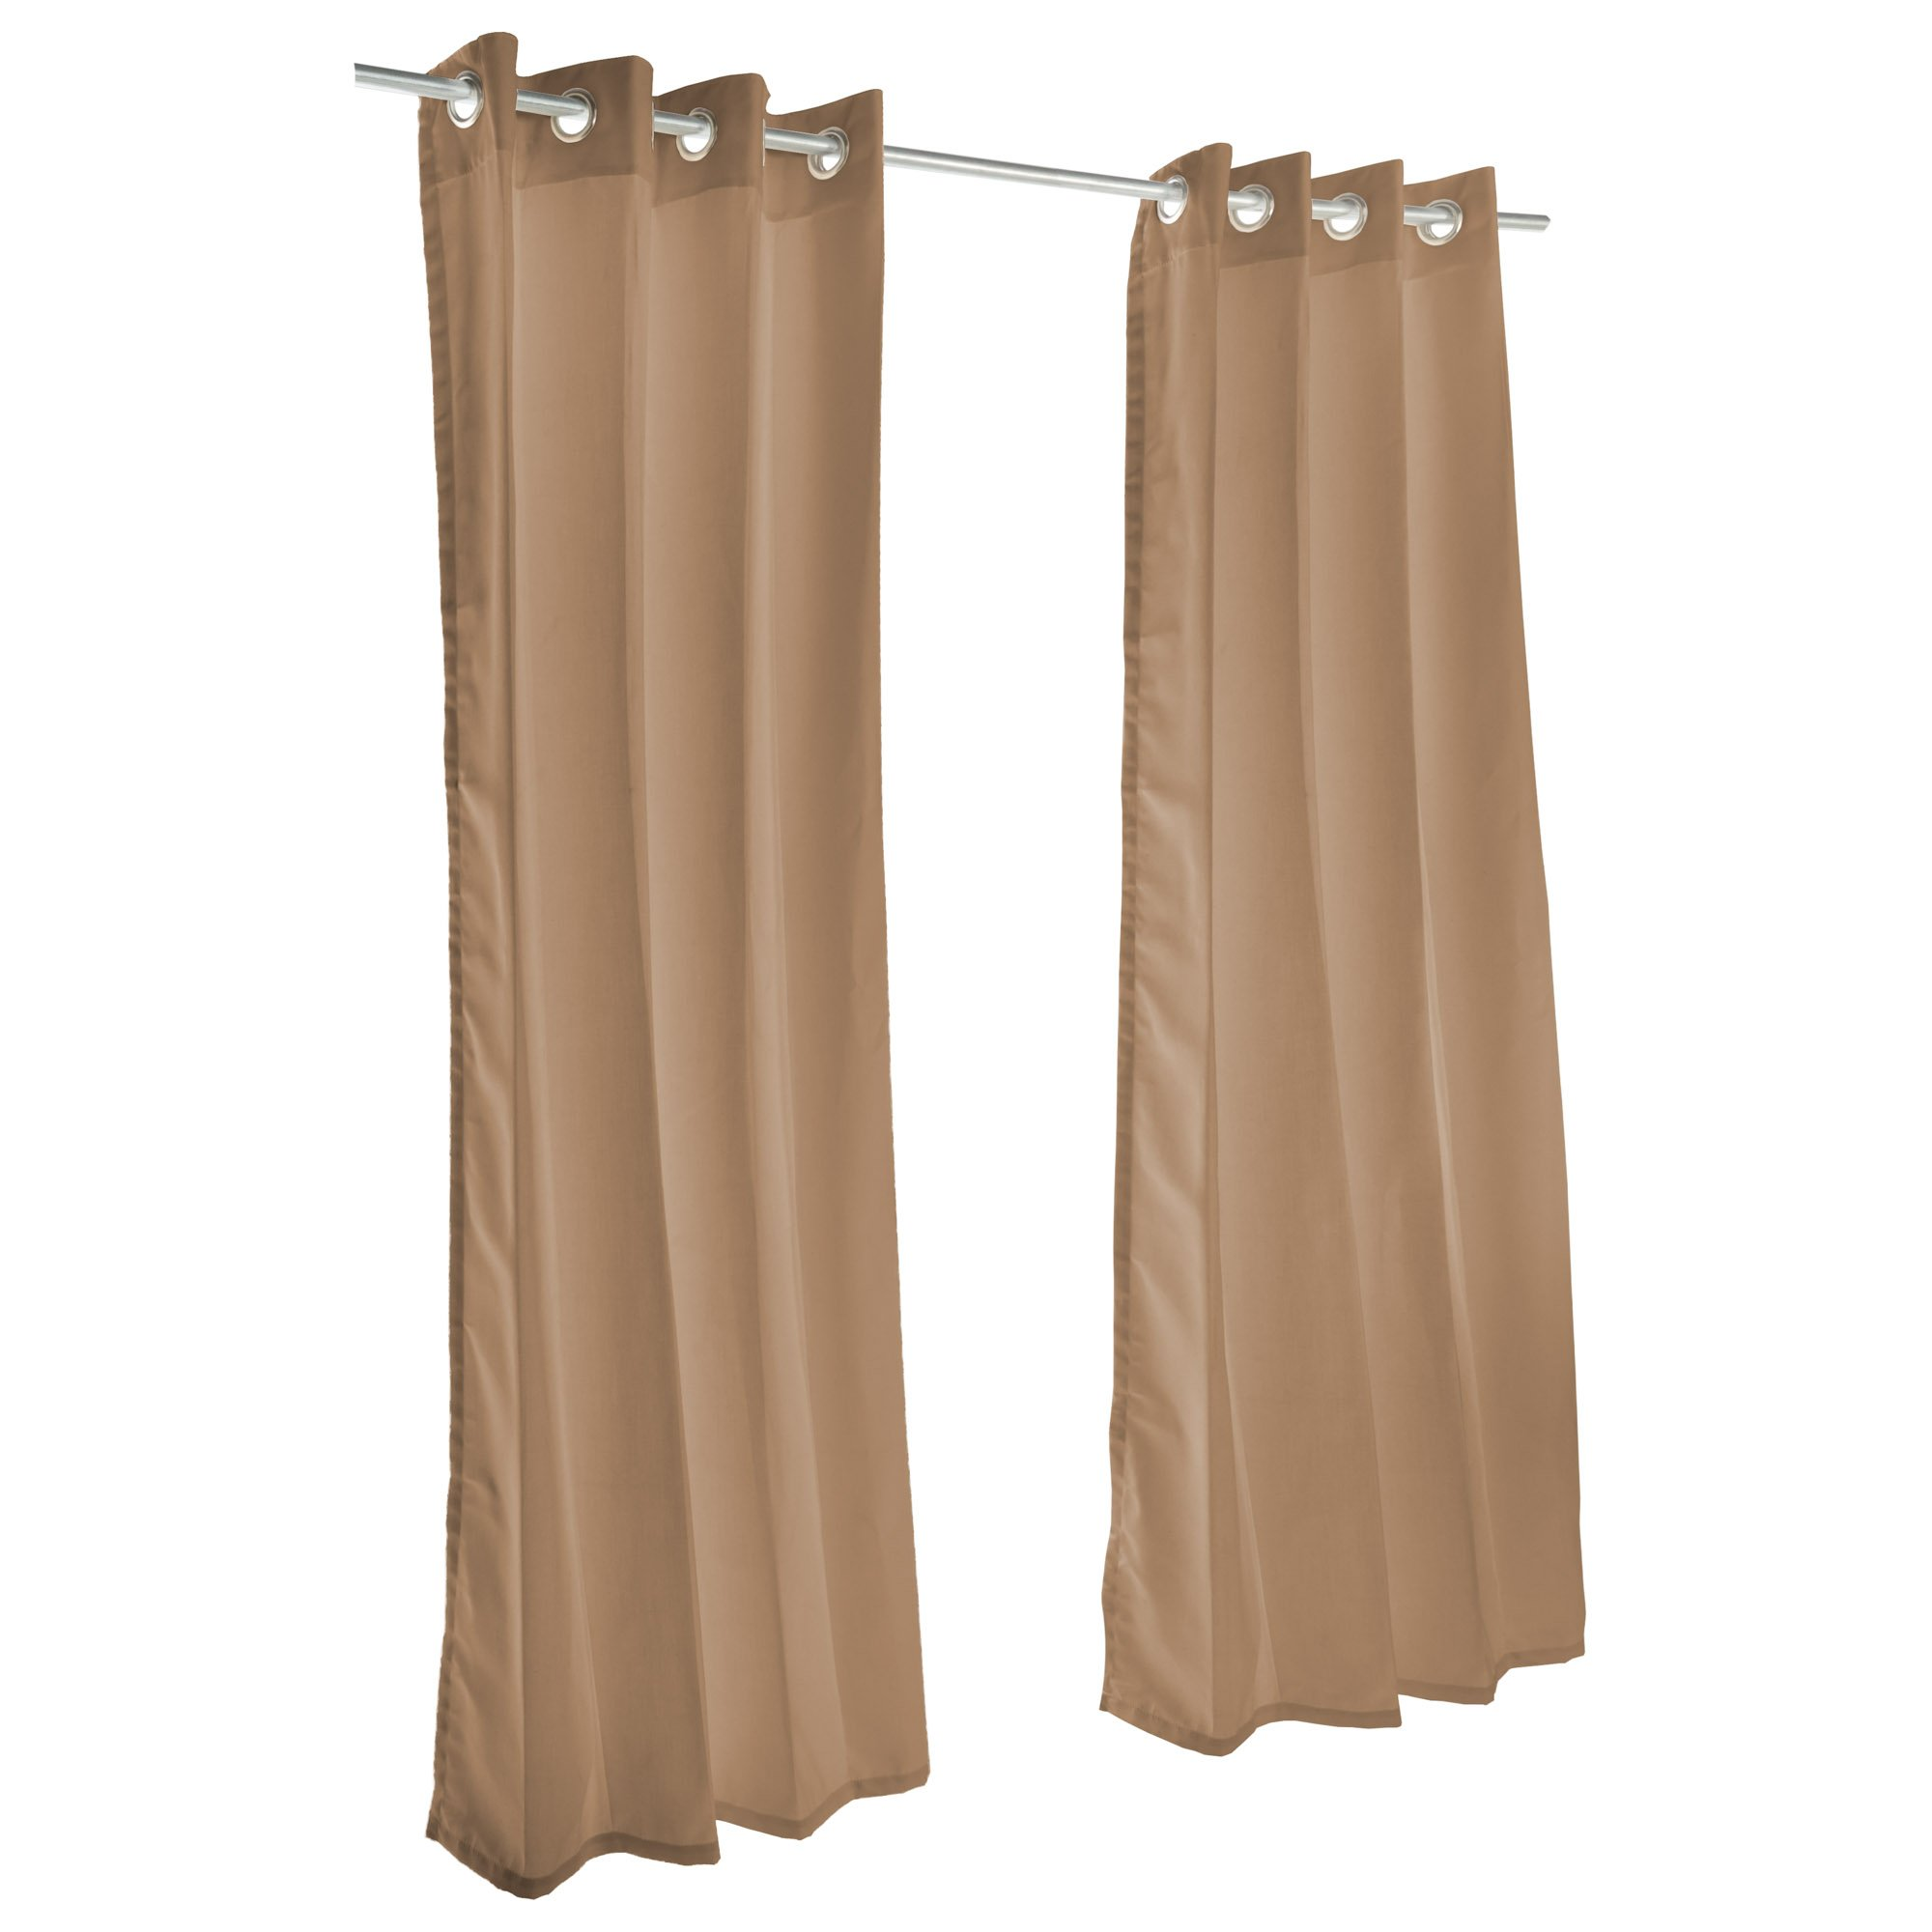 Sunbrella Outdoor Curtain with Nickel Grommets - Canvas Cocoa (50'' W X 96'' L)